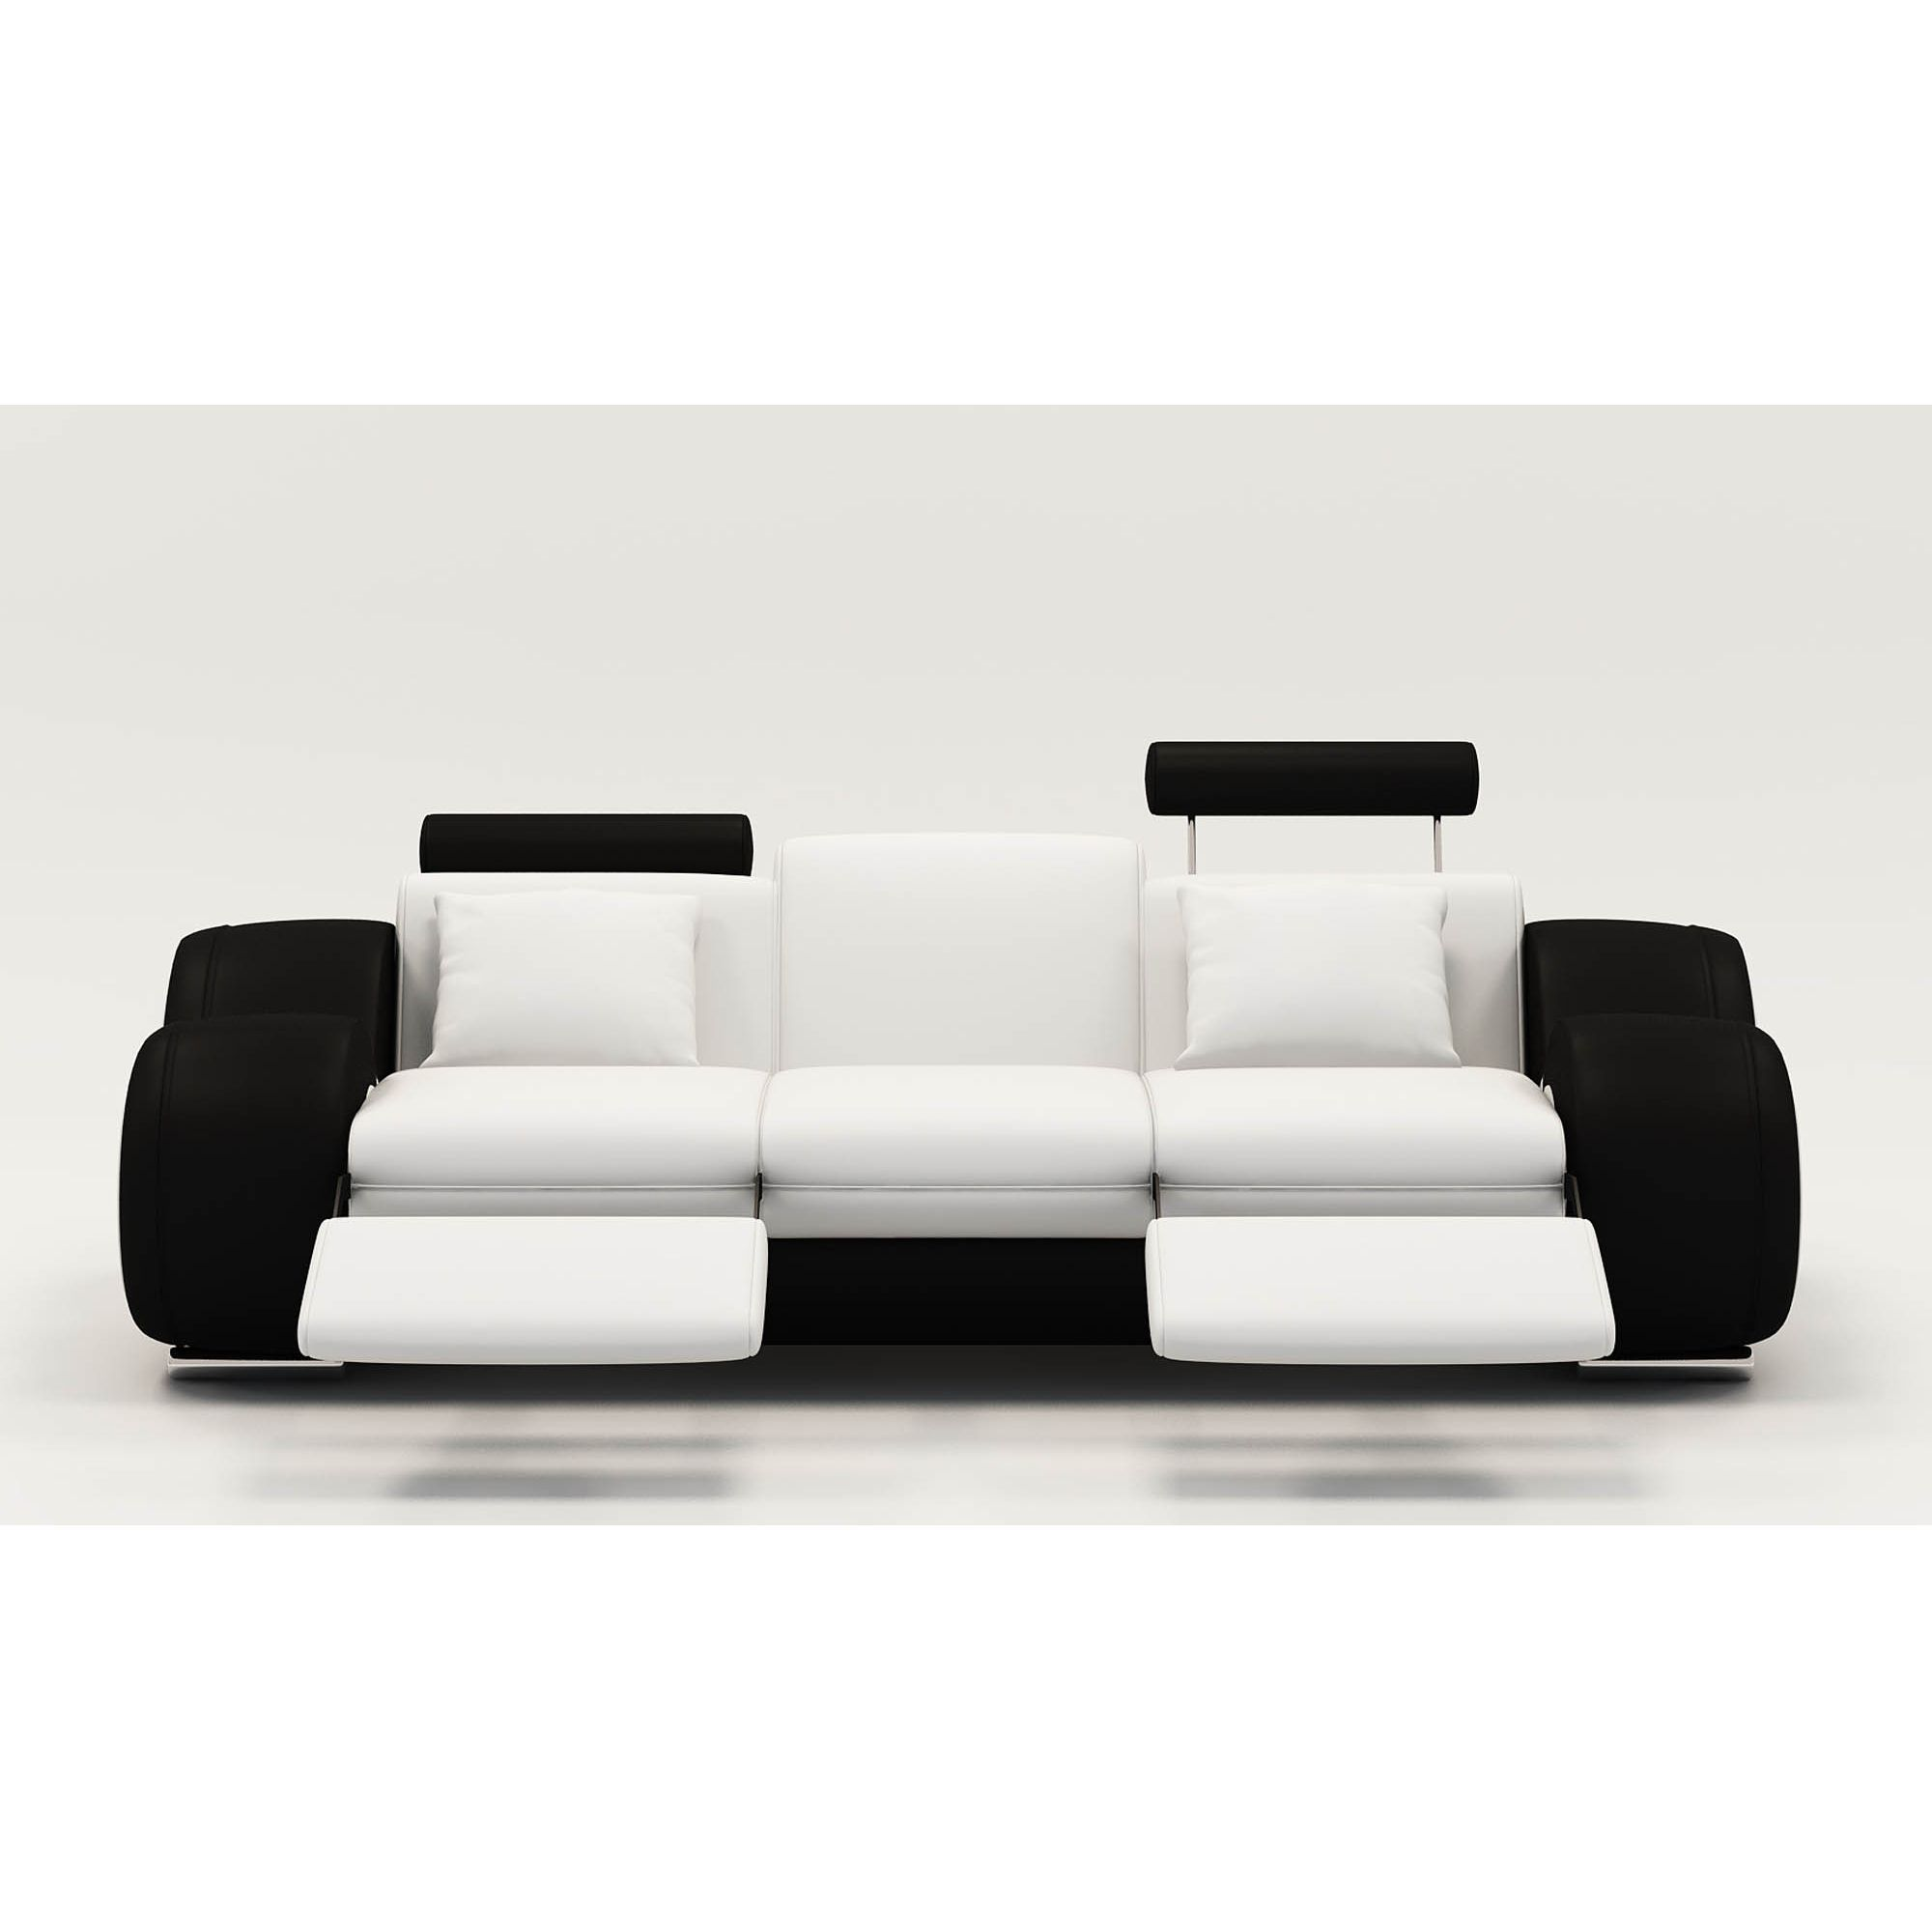 Deco in paris canape design 3 places cuir blanc et noir for Canape lit cuir 3 places